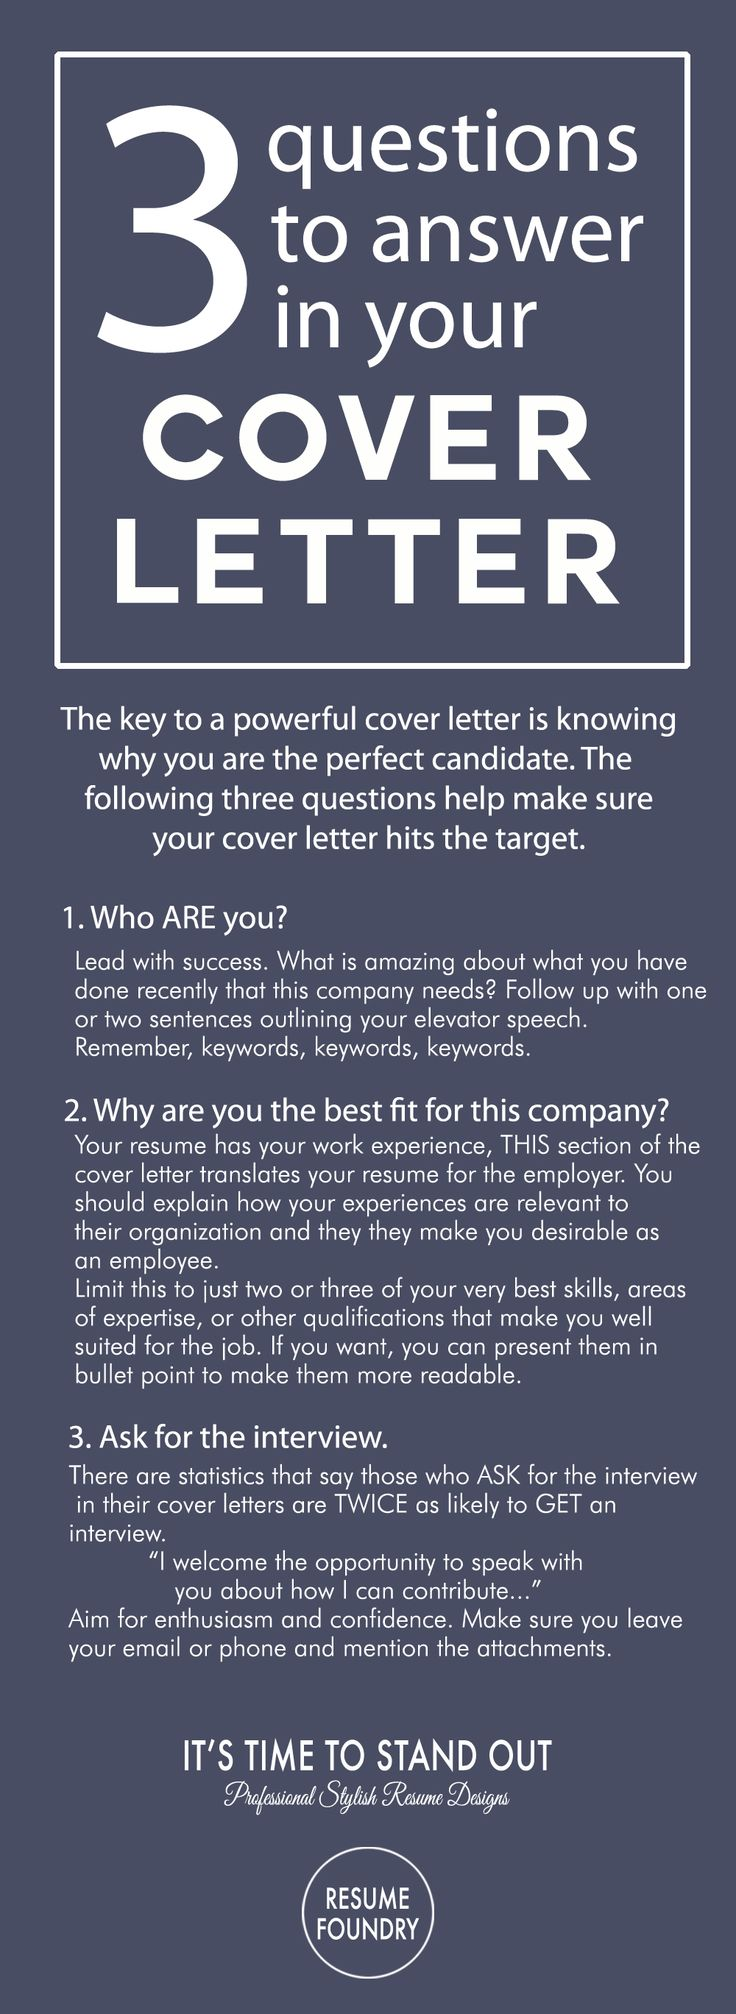 cover letter tips outline how to write a cover letter - How To Prepare Cover Letter For Resume